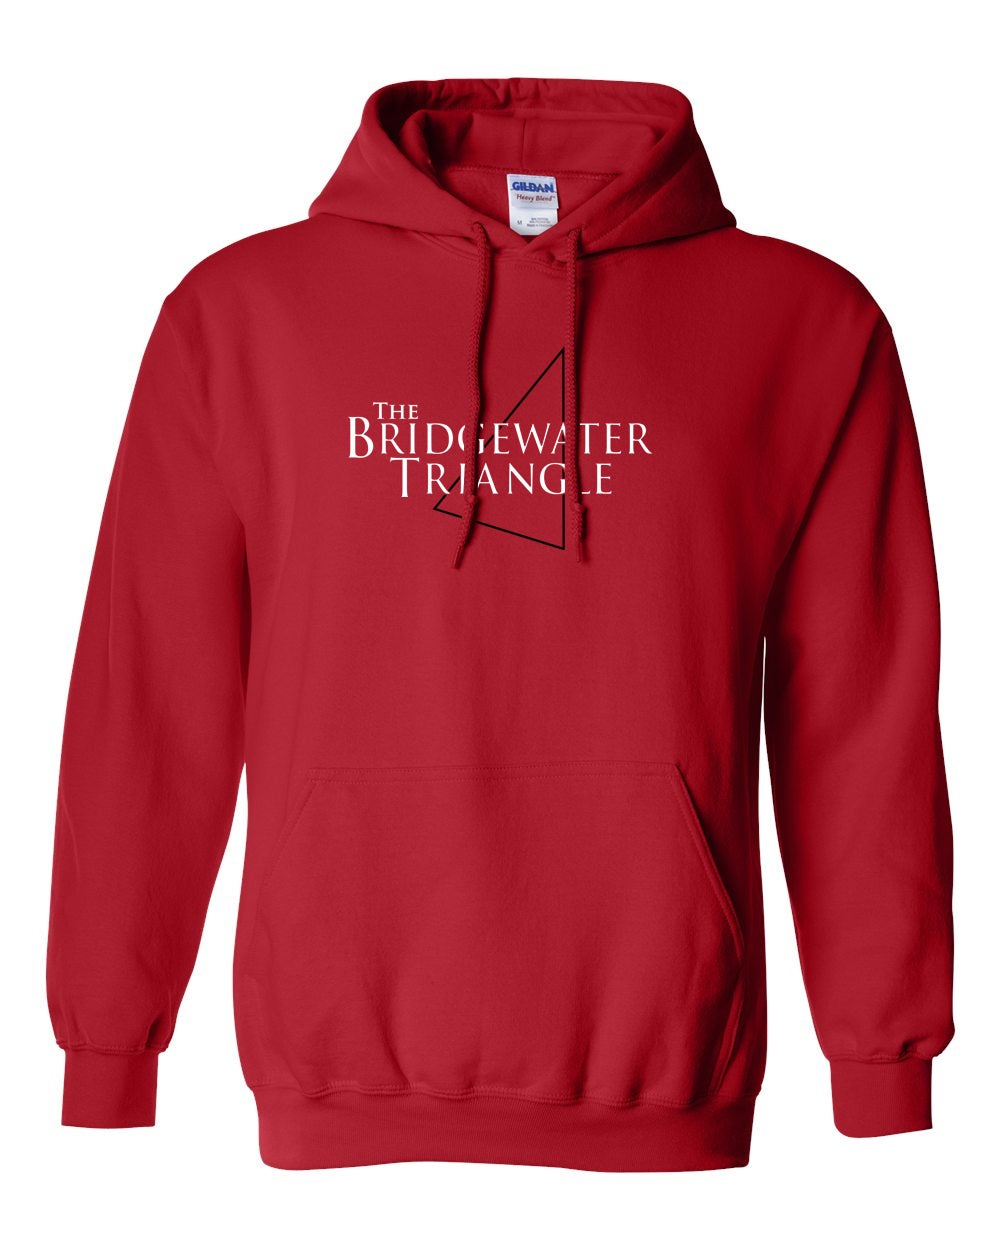 Image of Bridgewater Triangle Red Hoodie  - TEMP OUT OF STOCK